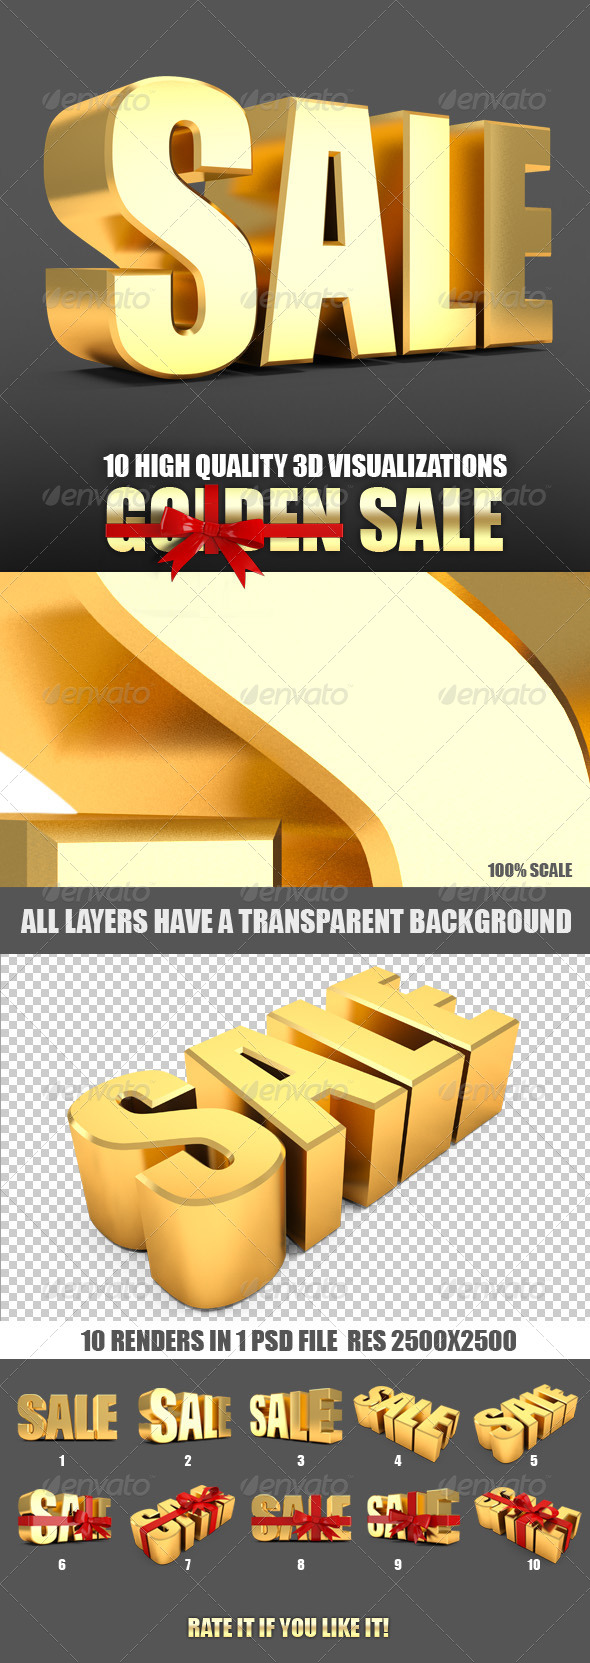 Sale and sale label tied with red ribbon 3d - Text 3D Renders